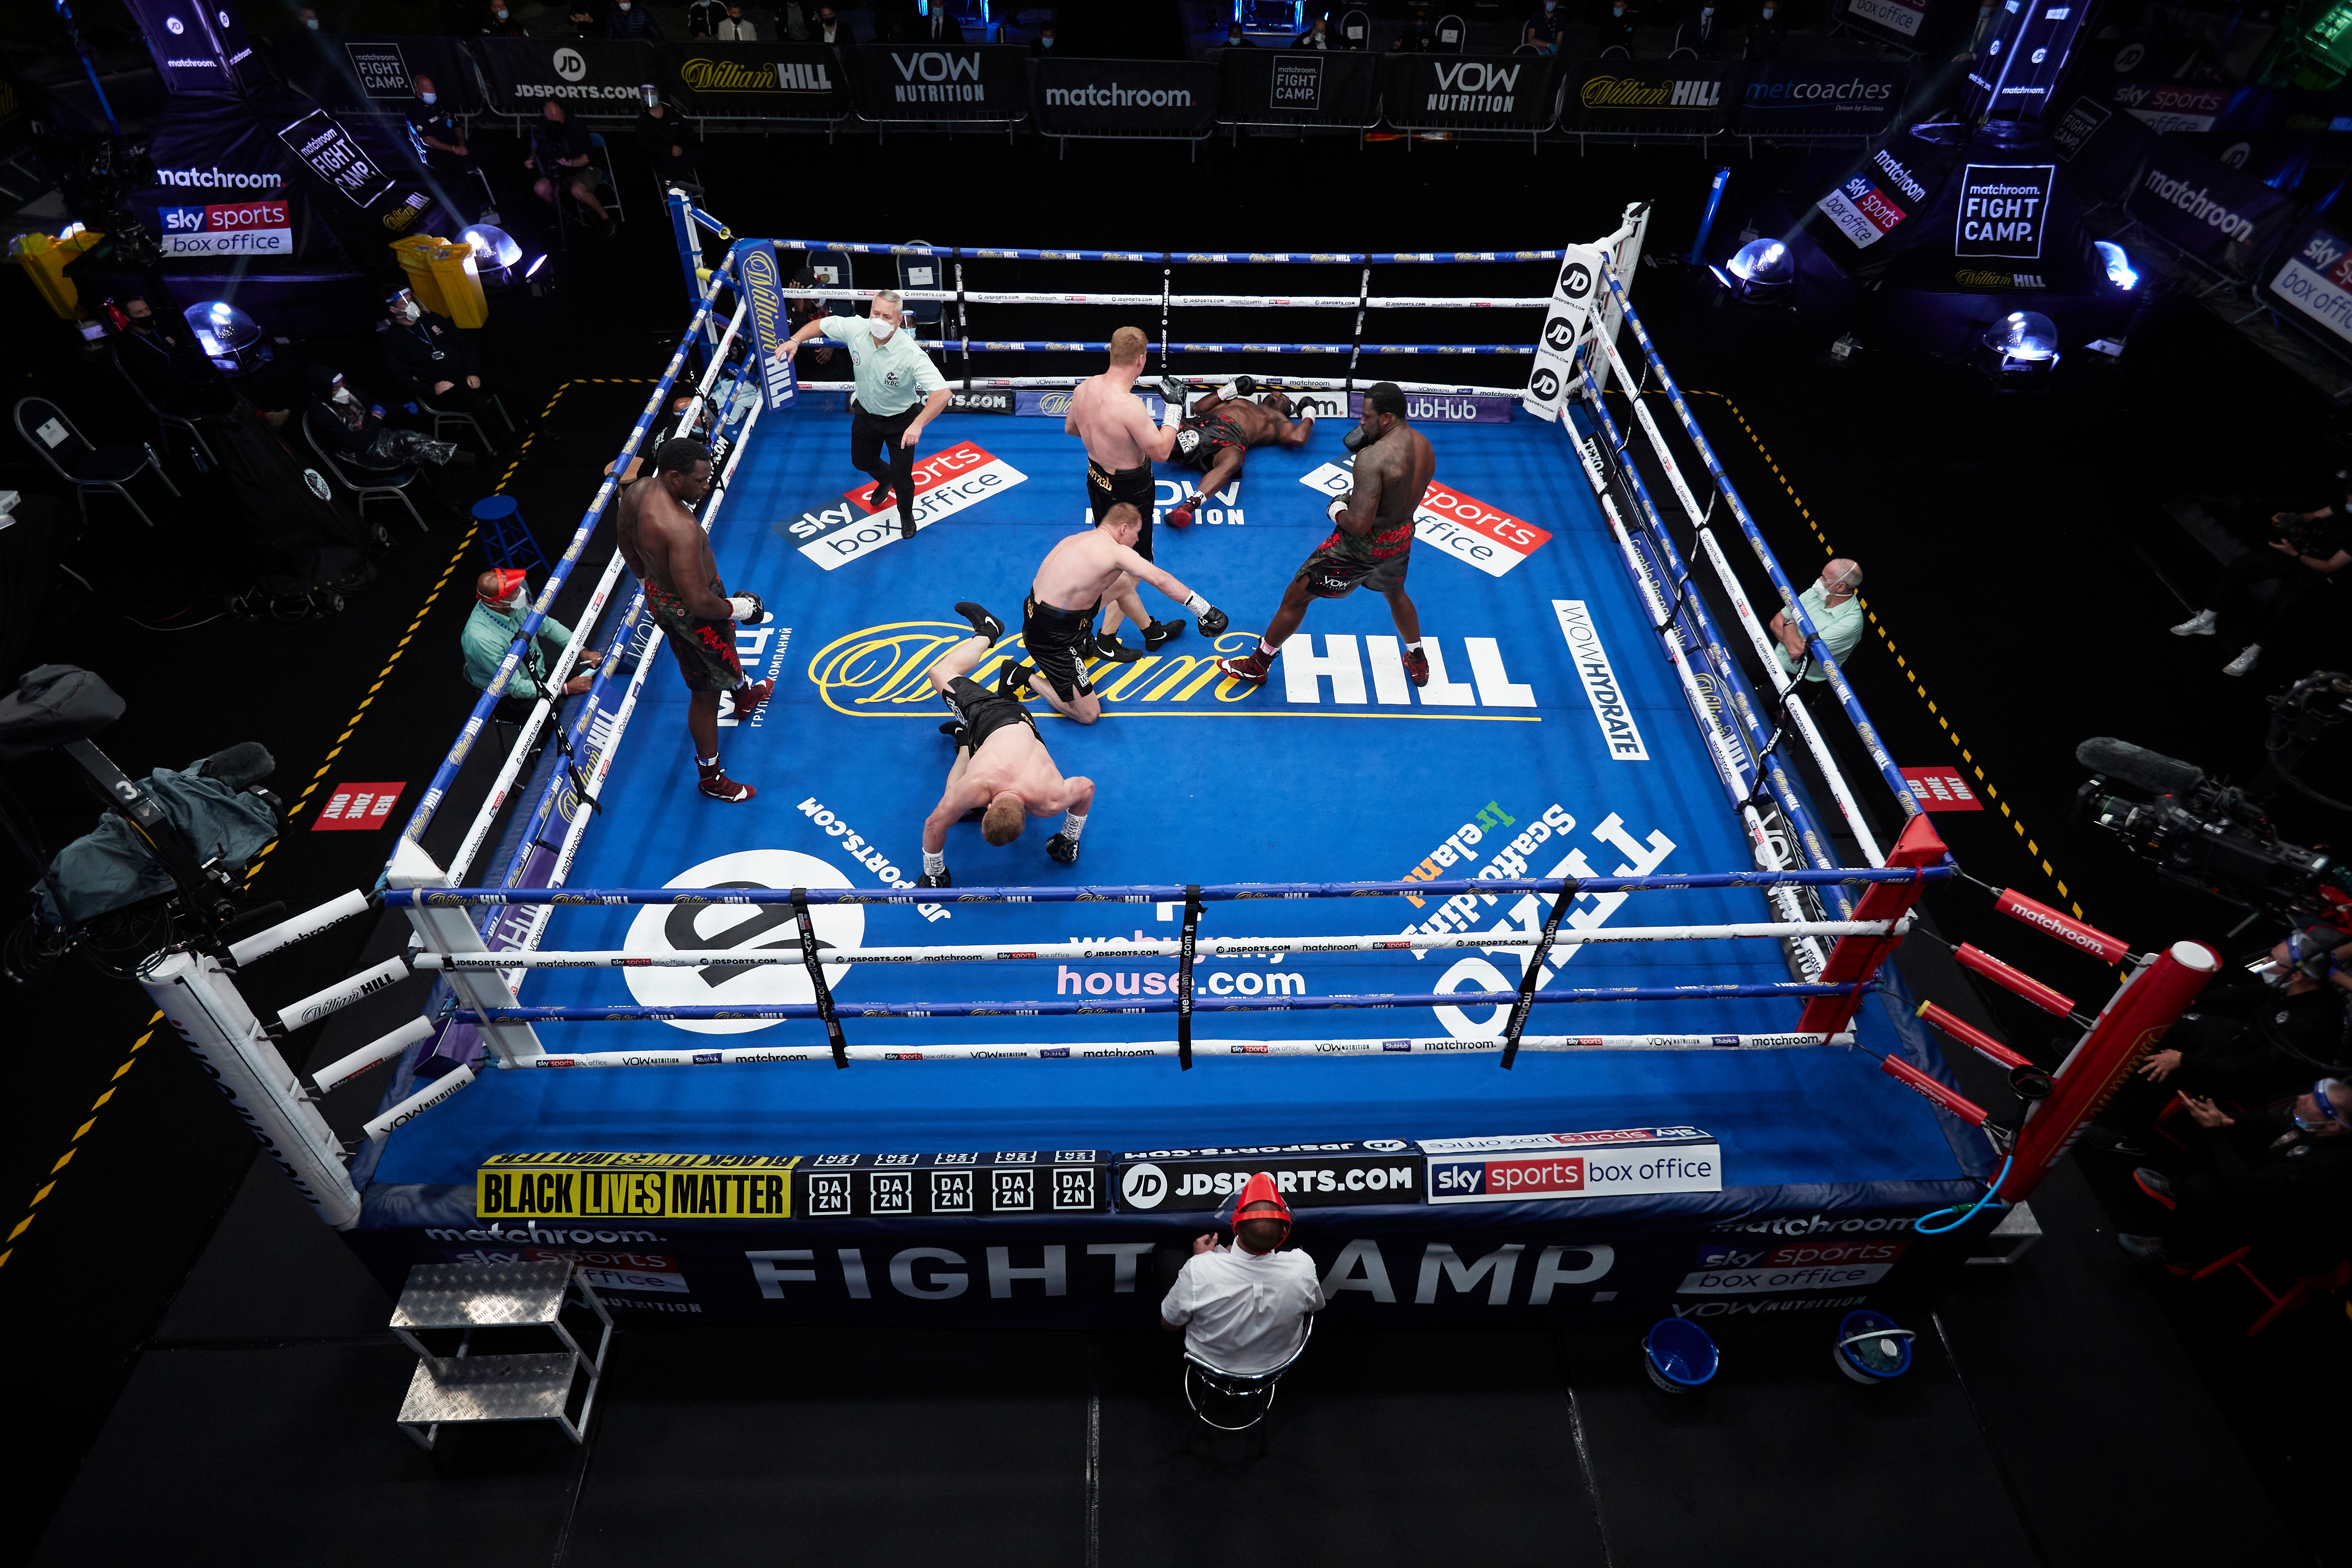 Whyte knocked Povetkin down twice, but was then knocked out